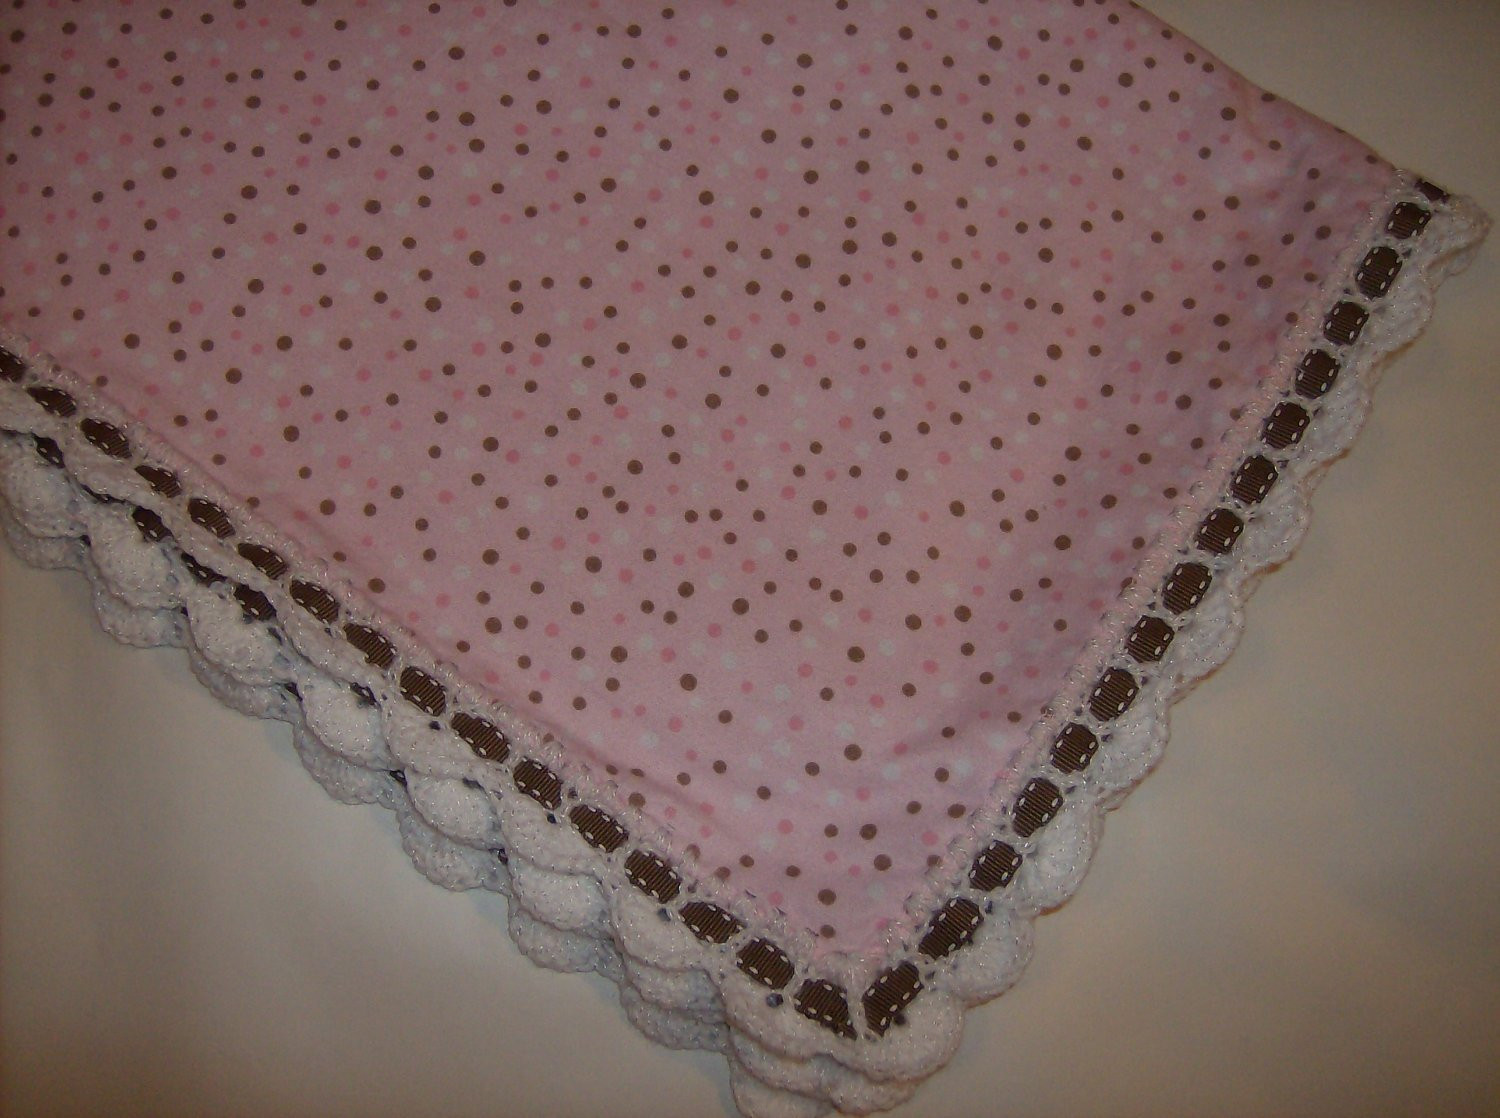 Best Of Pink Flannel Baby Blanket with Crochet Edging by Sherrywilsew Crochet Baby Blanket Edging Of Wonderful 42 Images Crochet Baby Blanket Edging